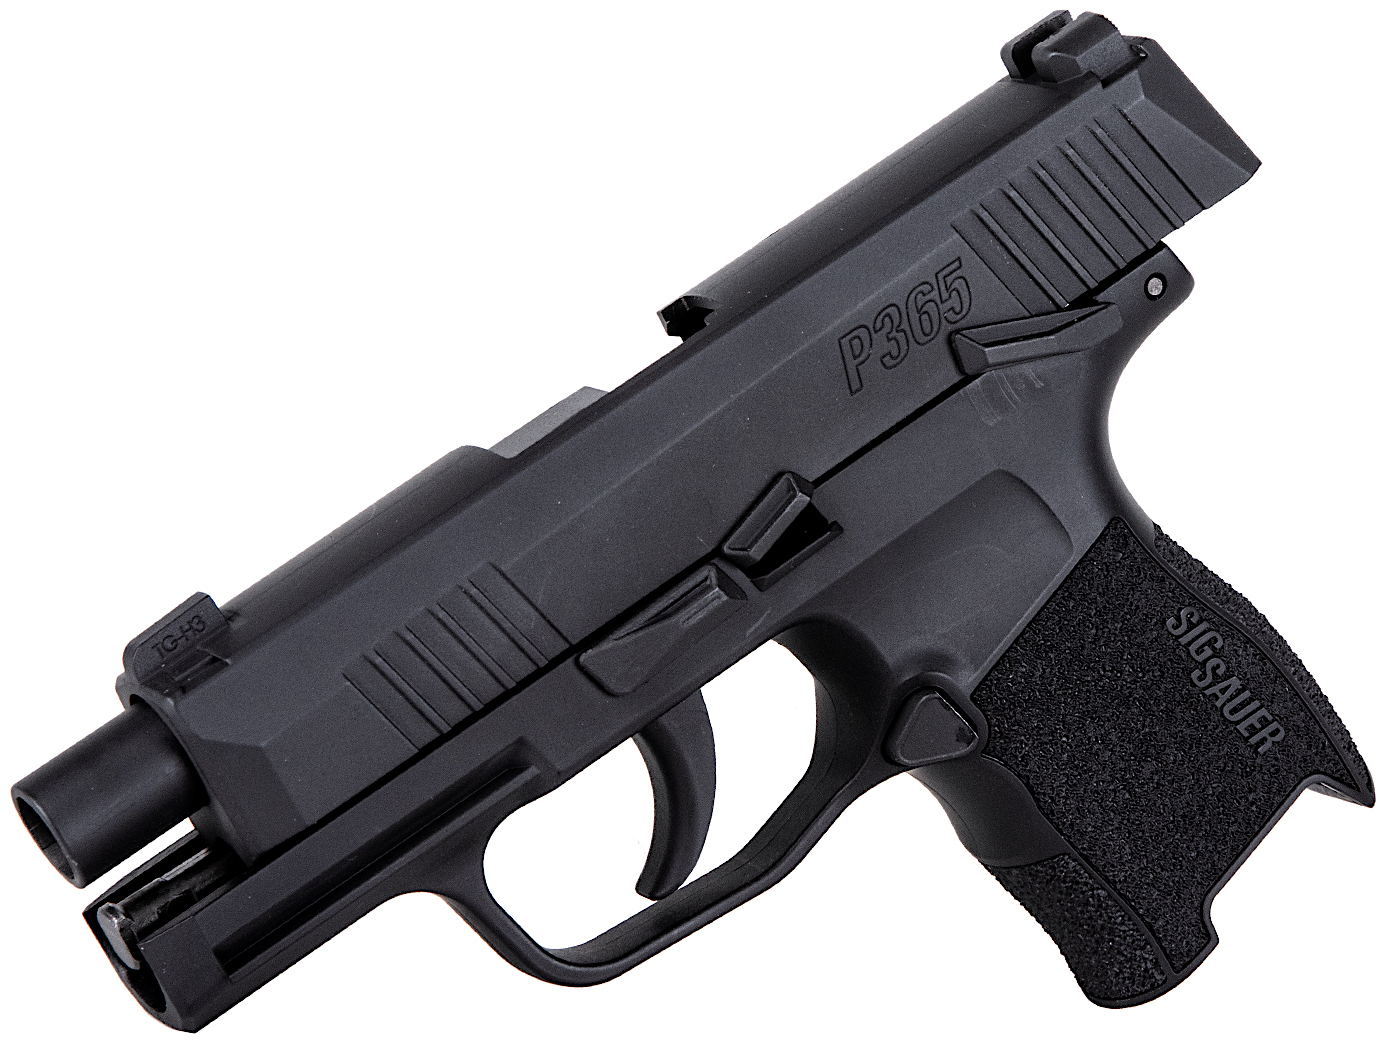 Sig Sauer P365 CO2 Blowback BB Pistol Table Top Review